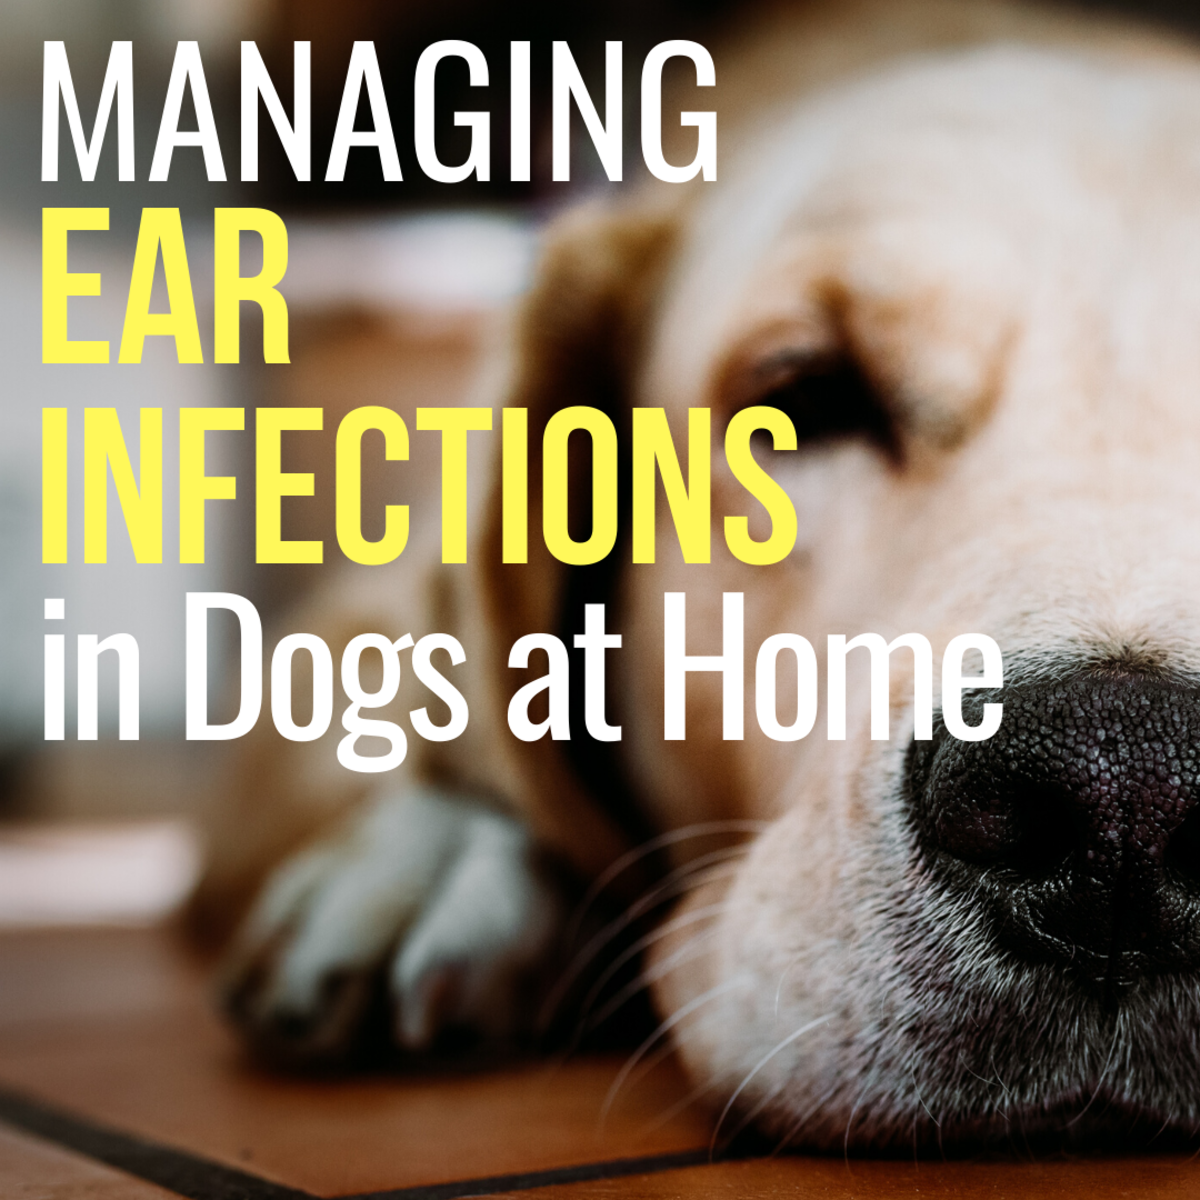 How to Treat a Dog's Ear Infection When You Can't See a Vet